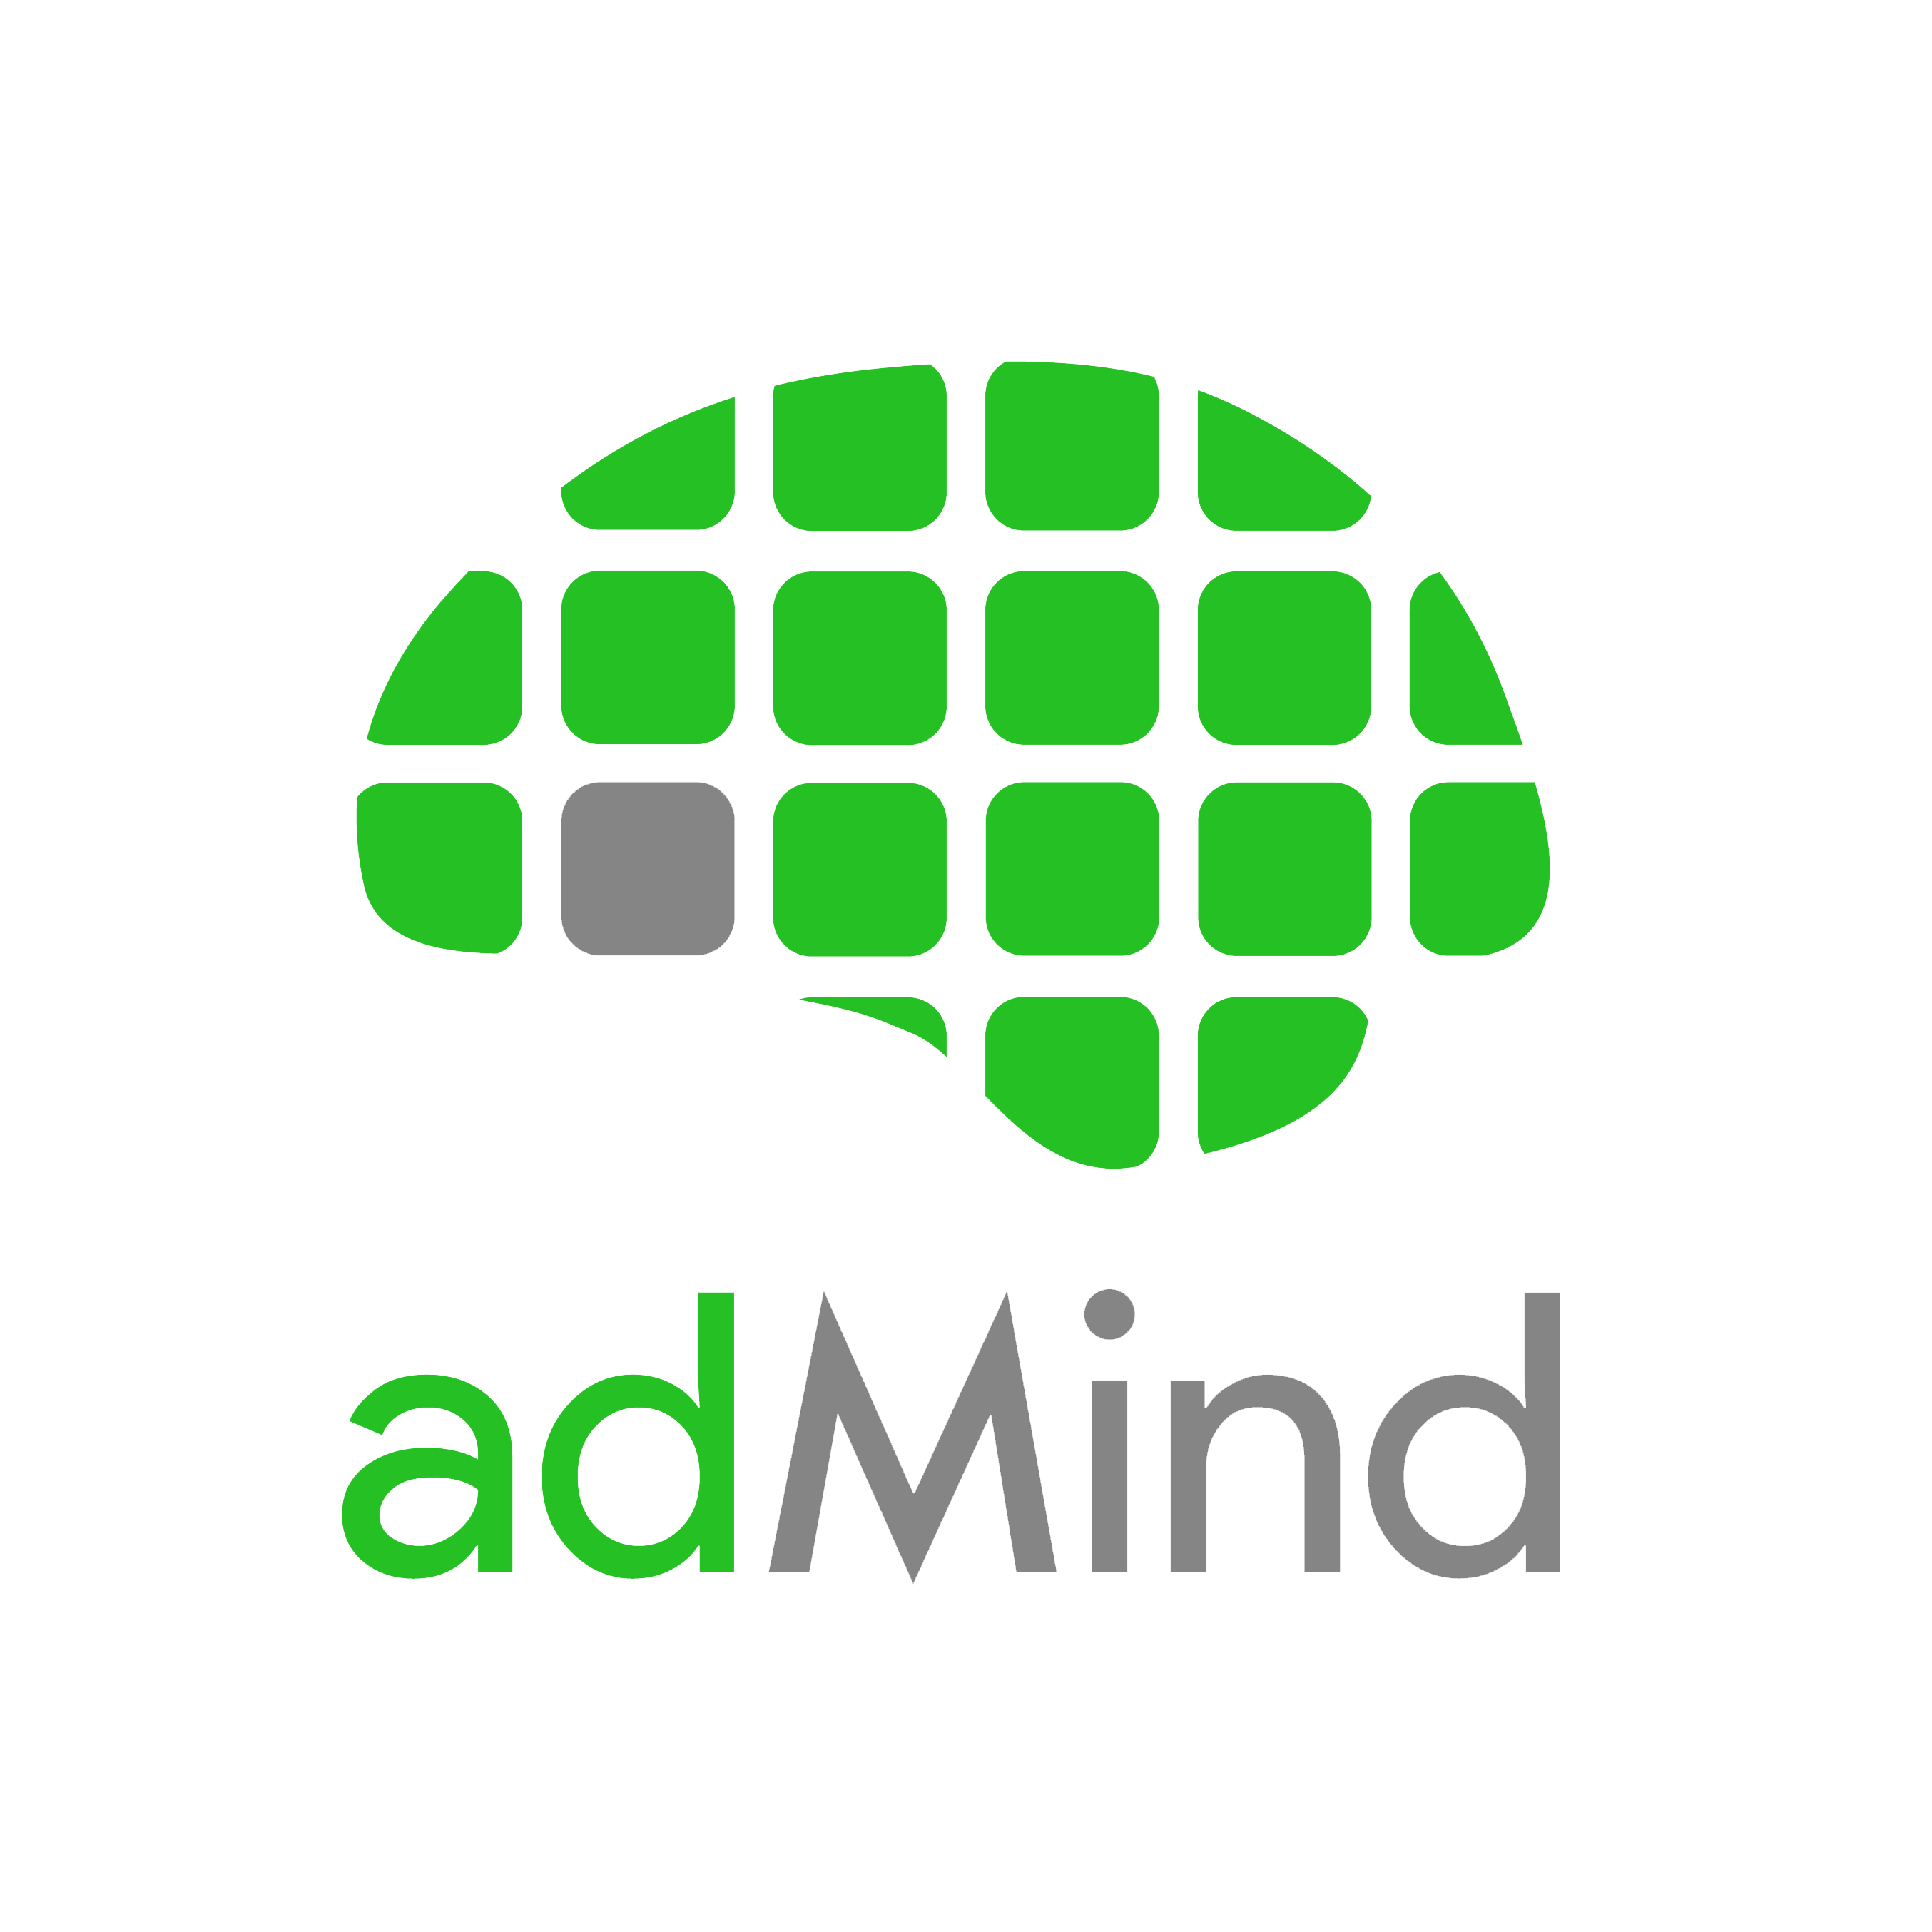 Trevor Whittingham admind website img